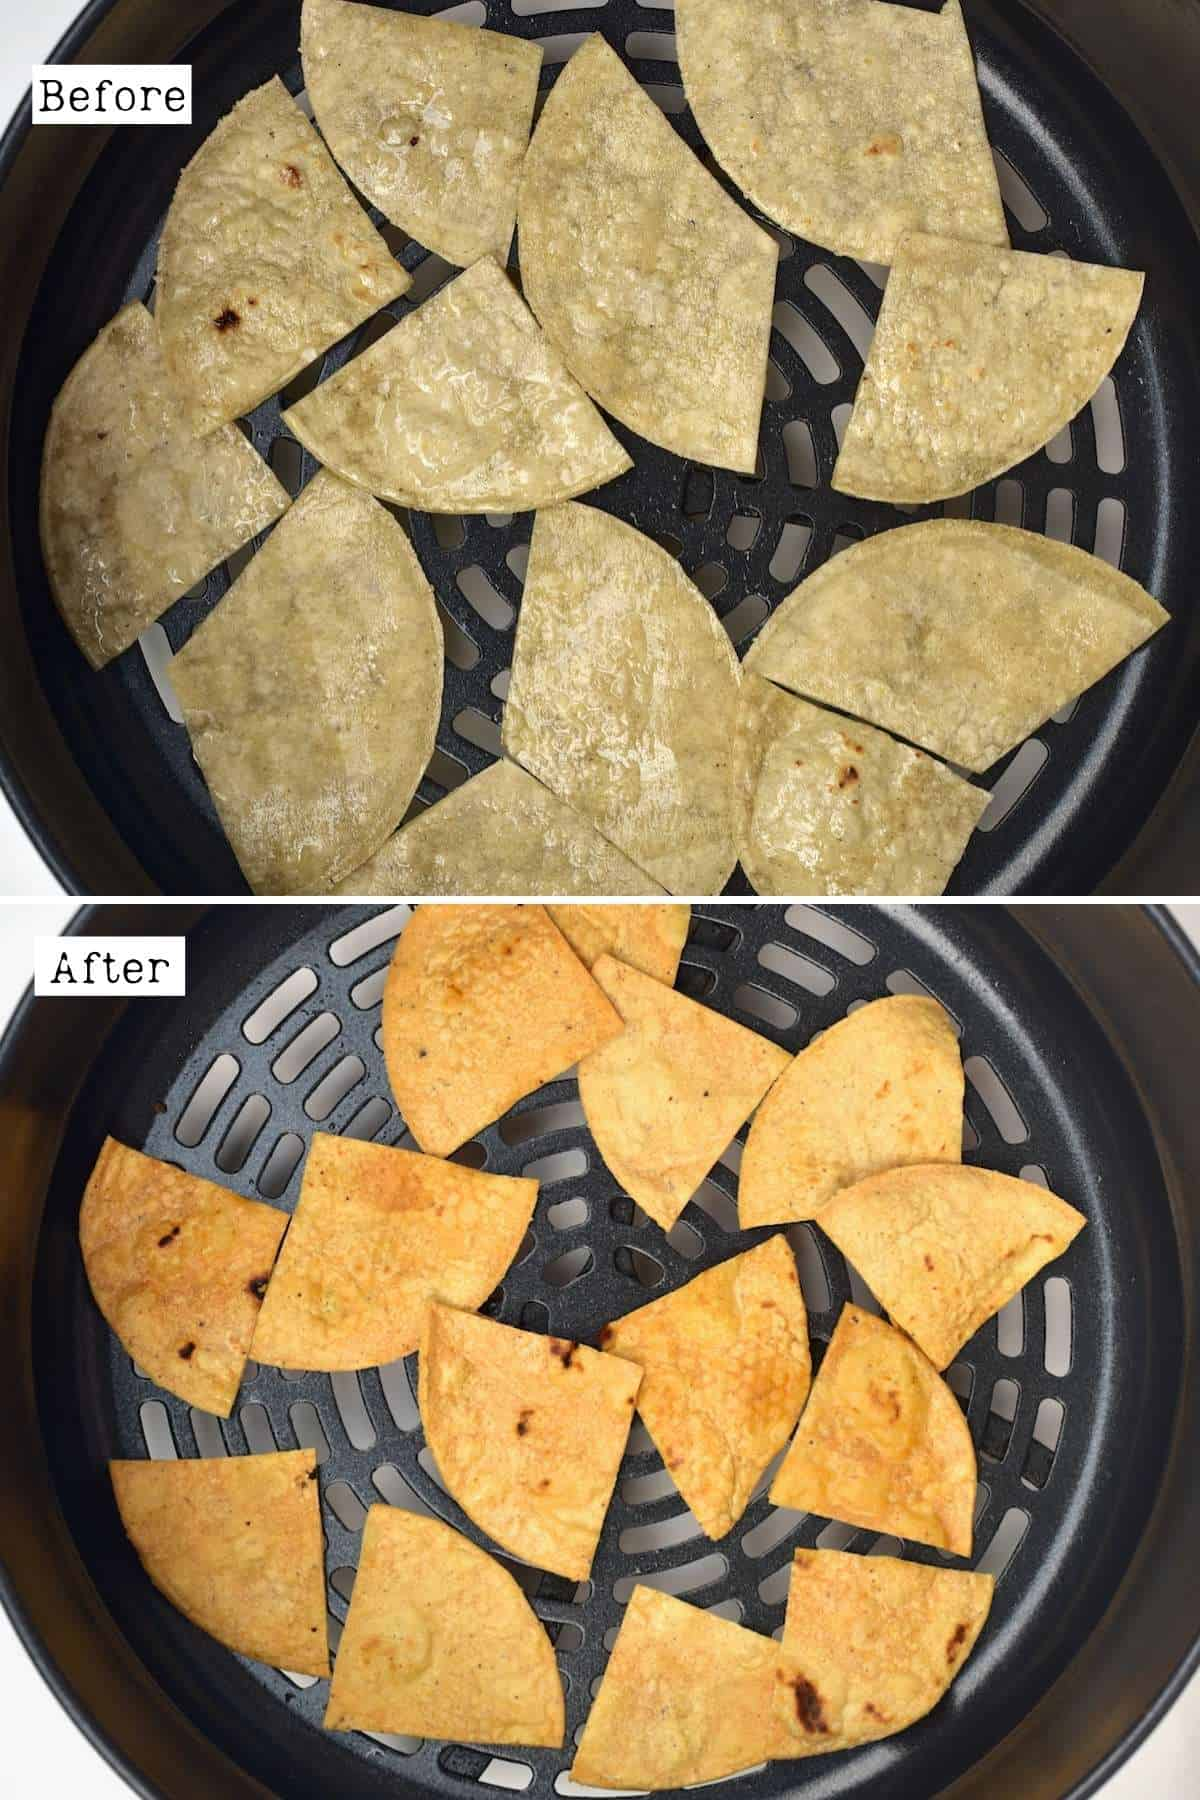 Before and after air frying tortilla chips